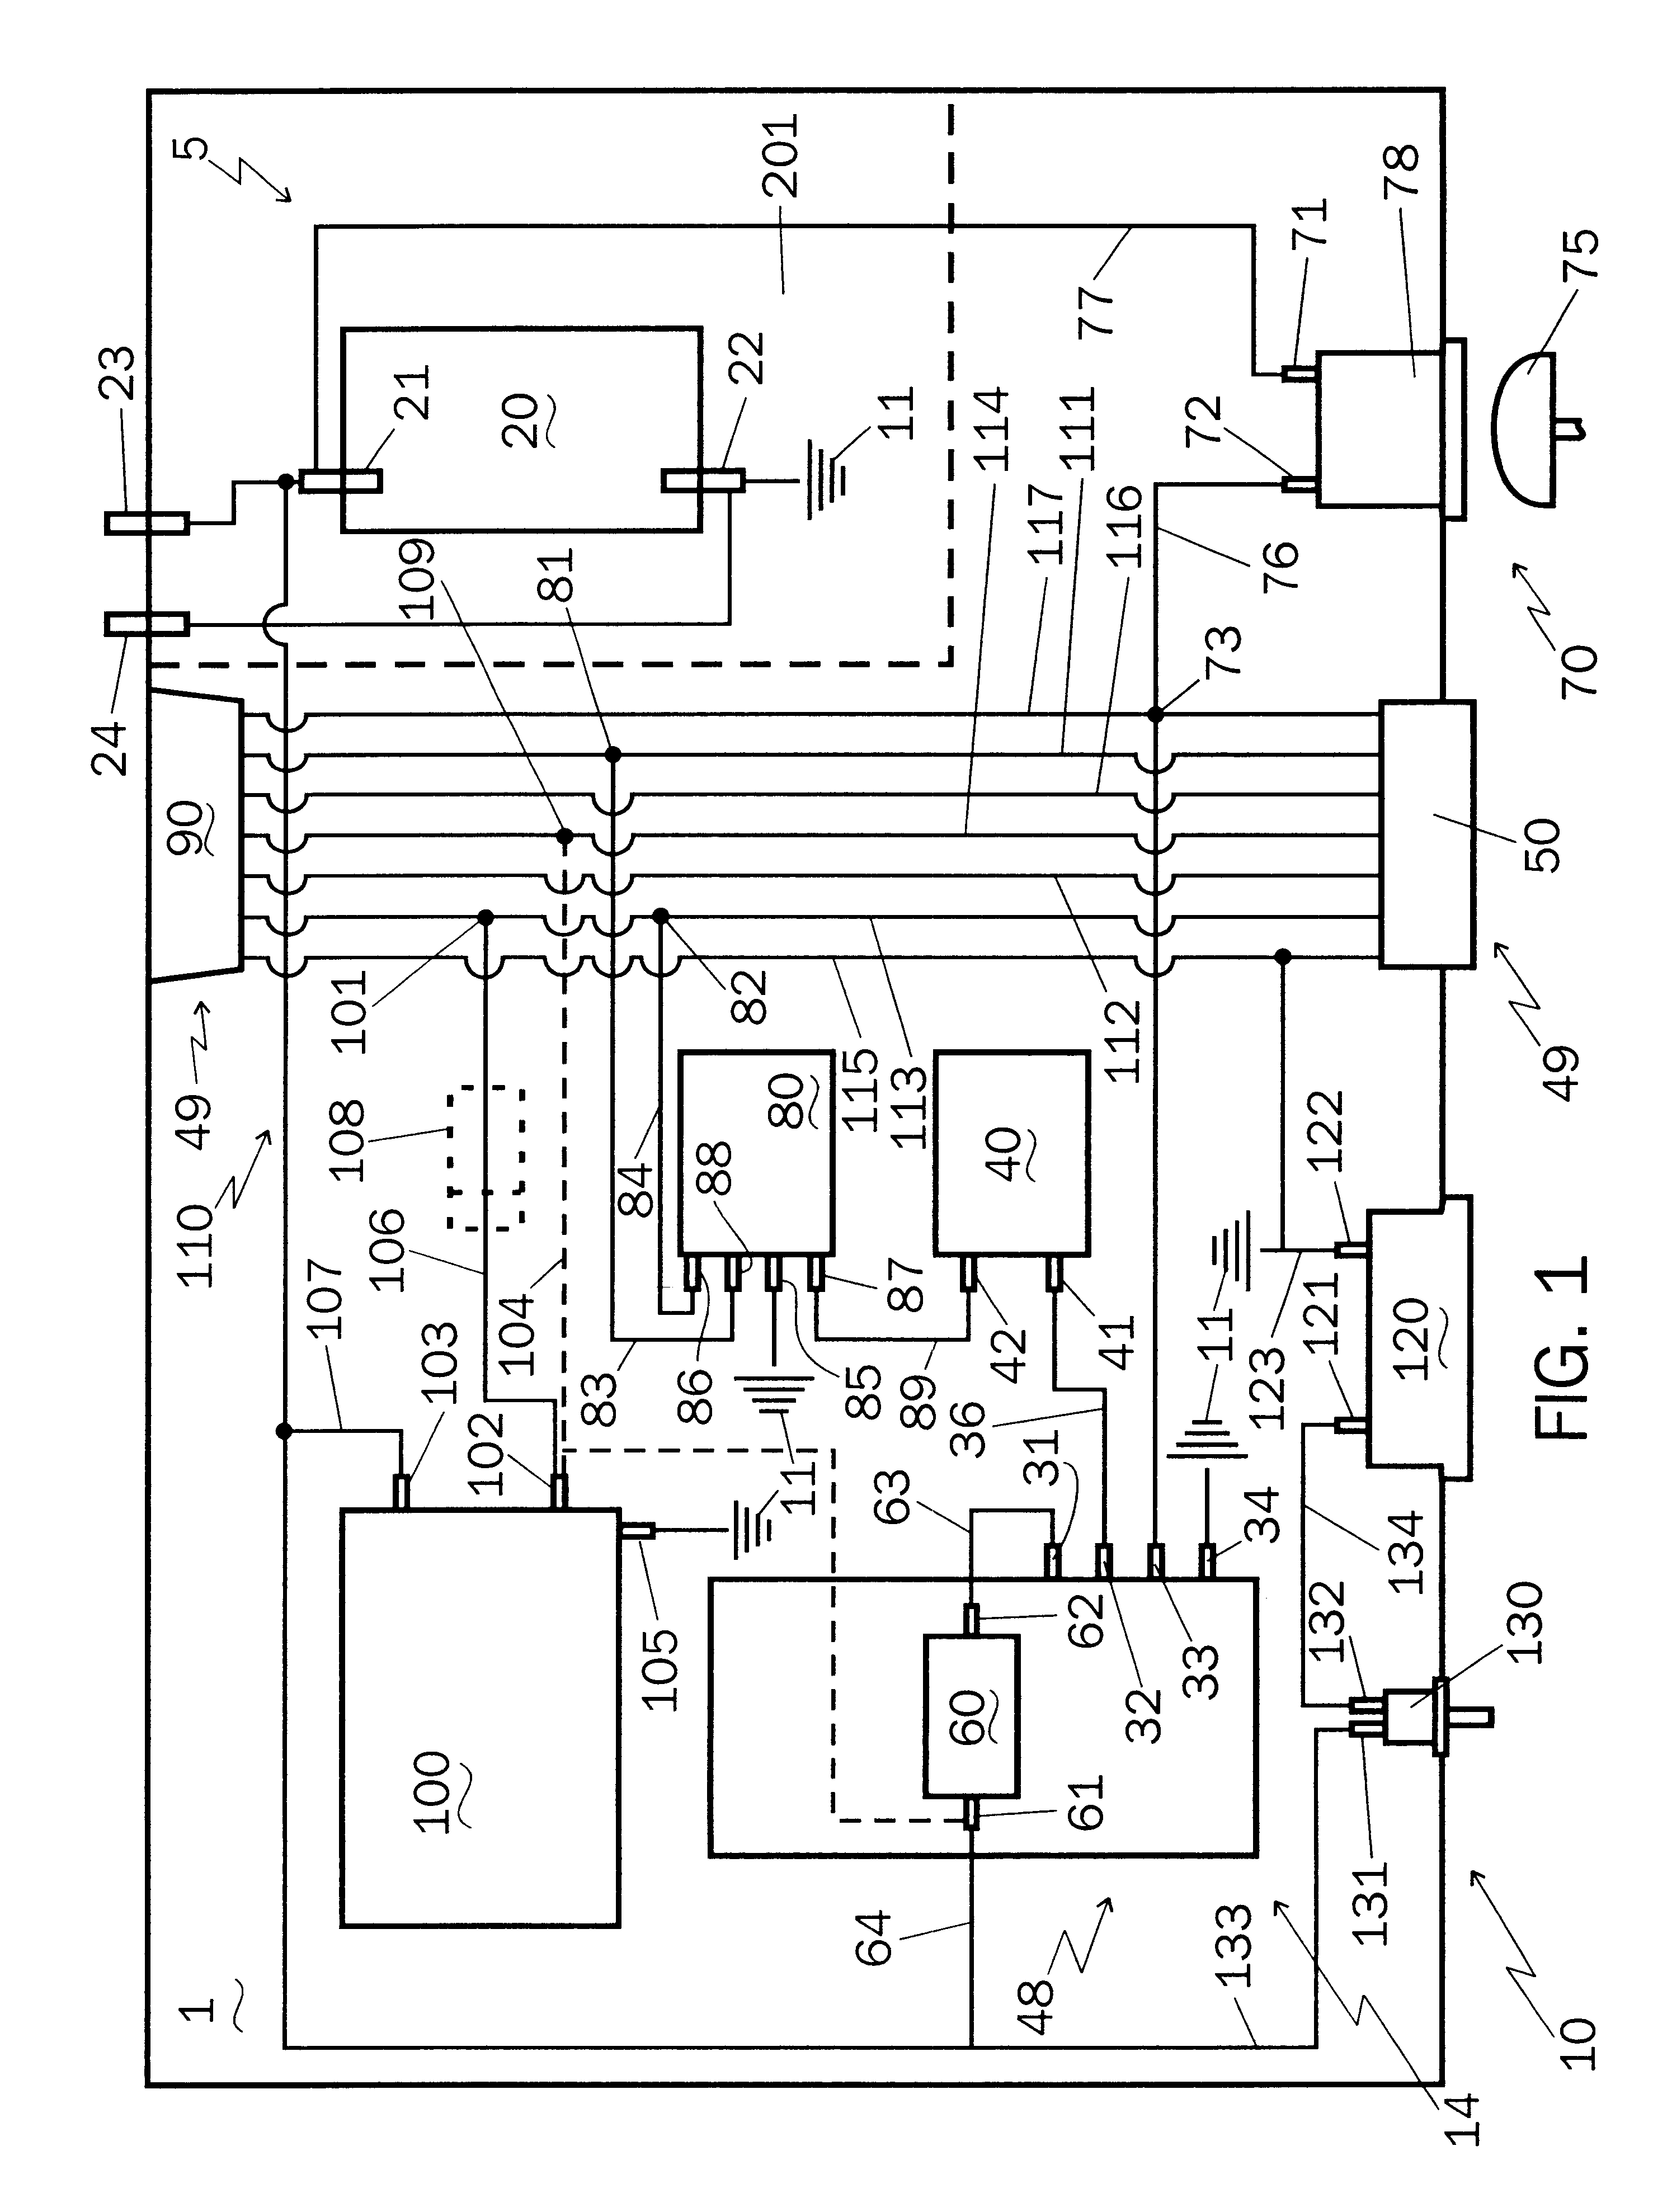 US06499814 20021231 D00001 patent us6499814 brake control system, self contained electronic tekonsha breakaway system wiring diagram at crackthecode.co